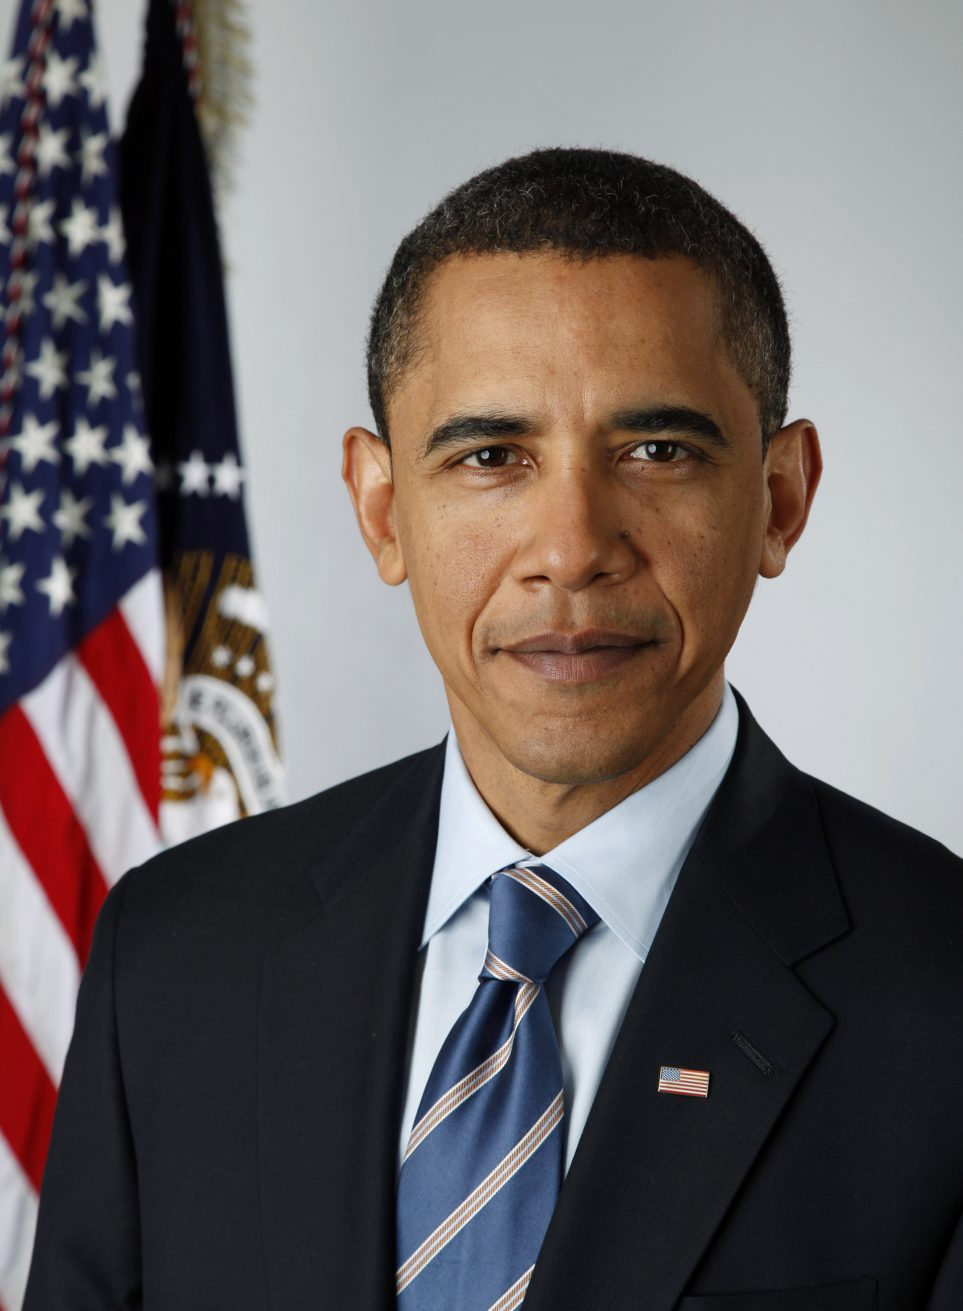 barack.obama.whportrait